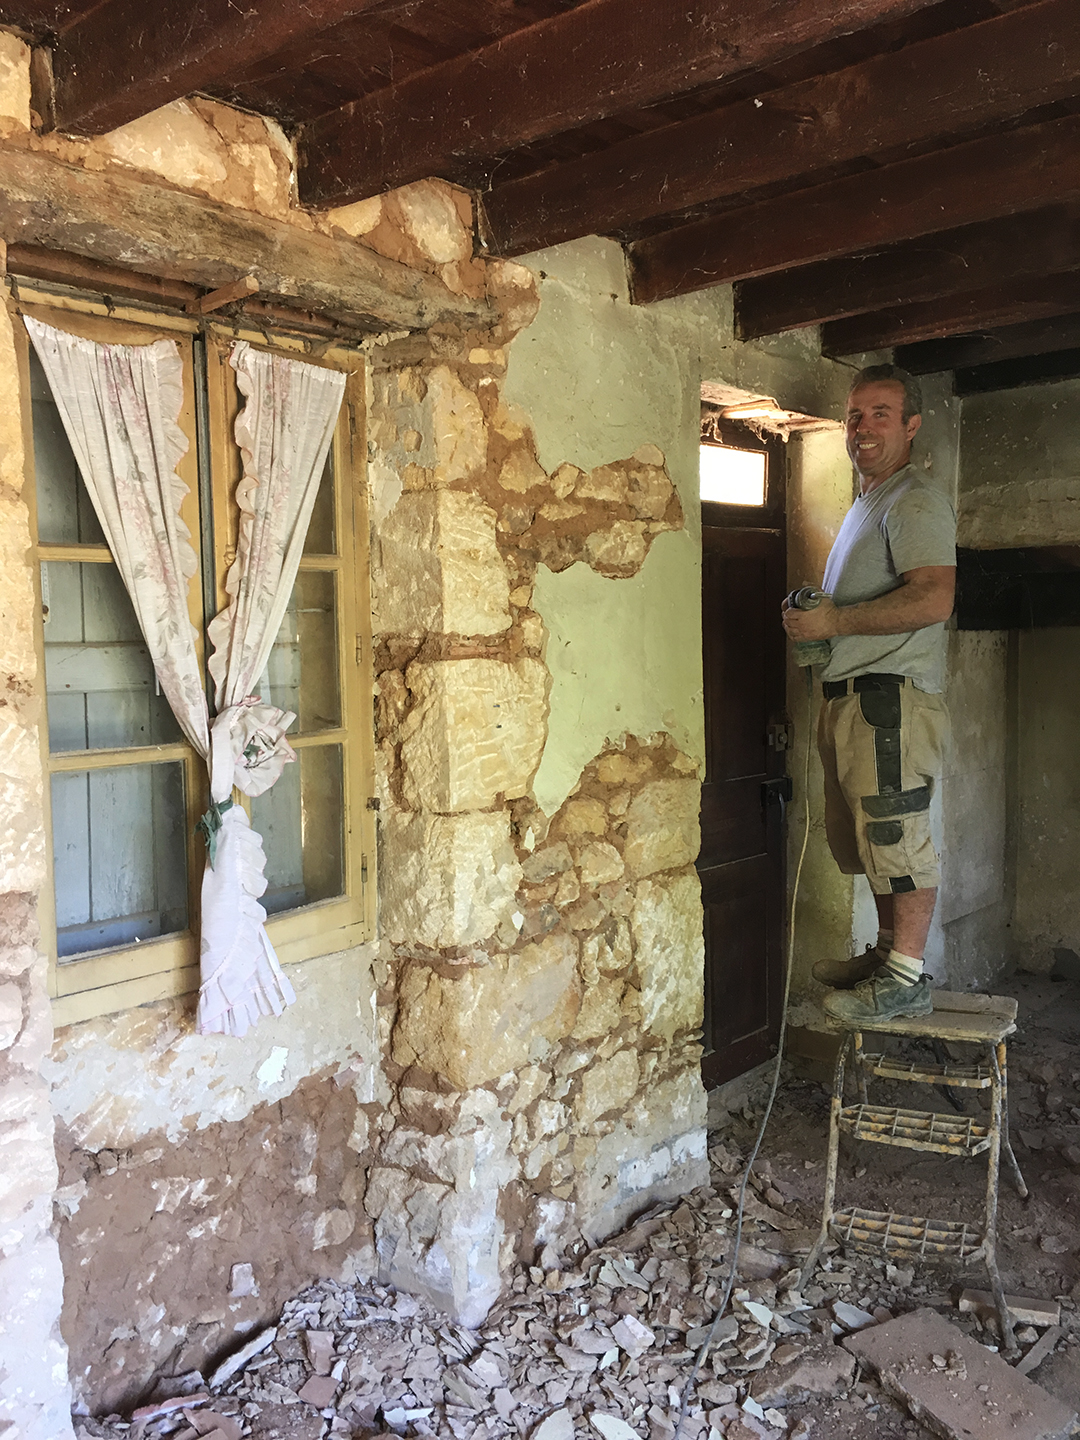 Thierry removes the old plaster